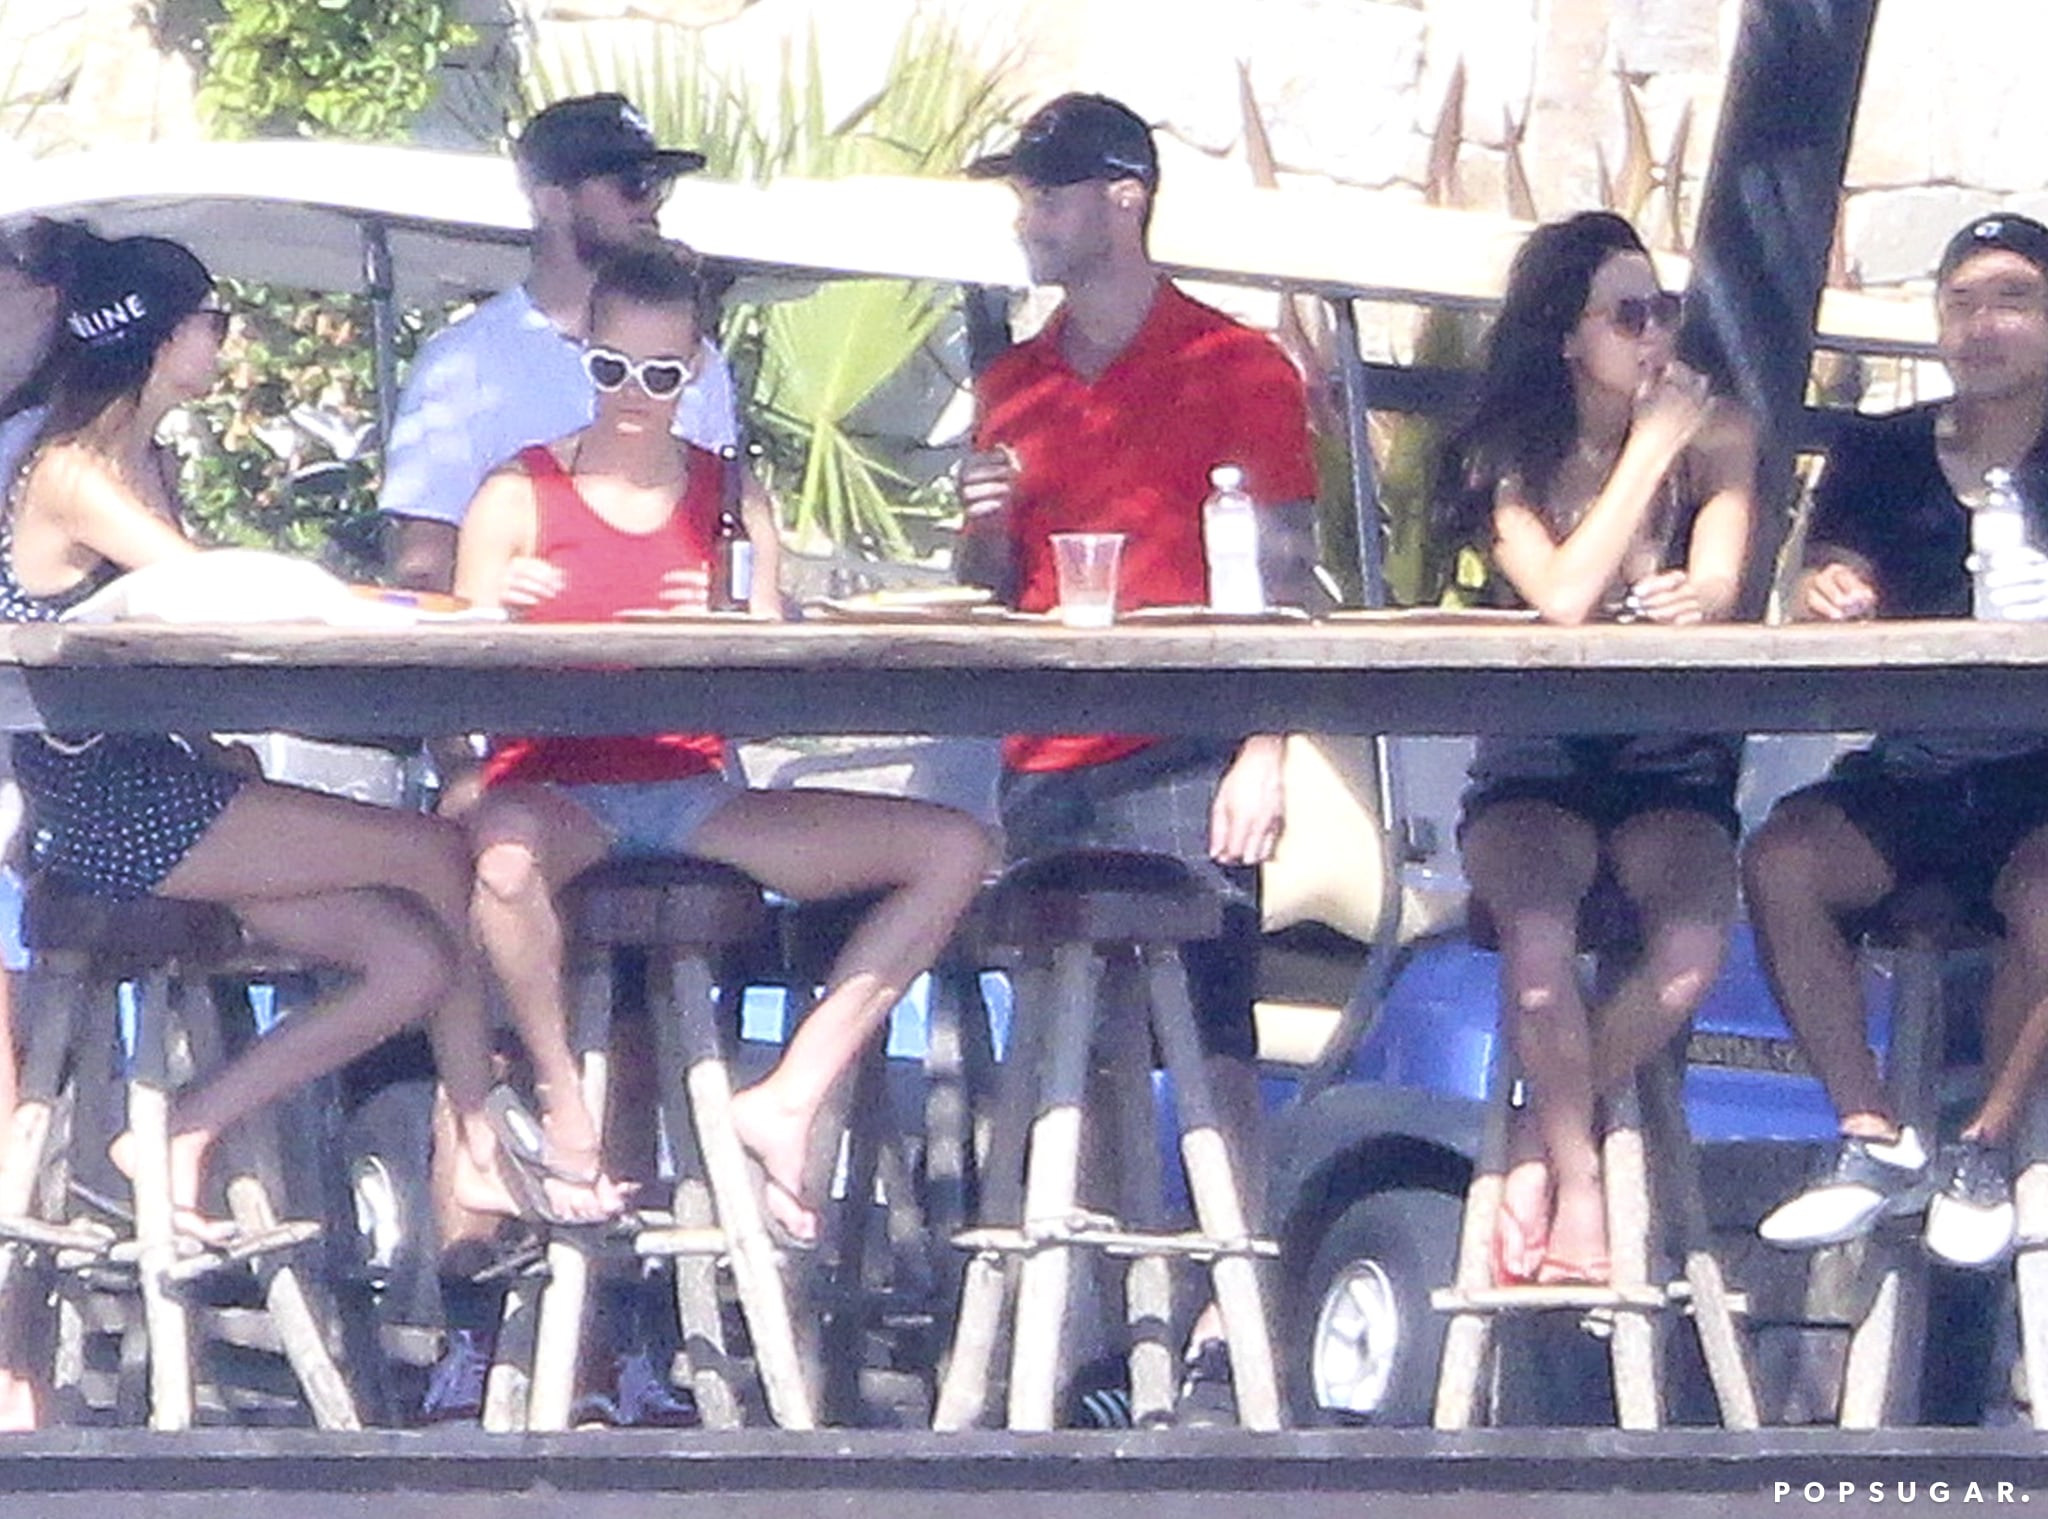 Adam Levine and Behati Prinsloo spent time with friends in Mexico.